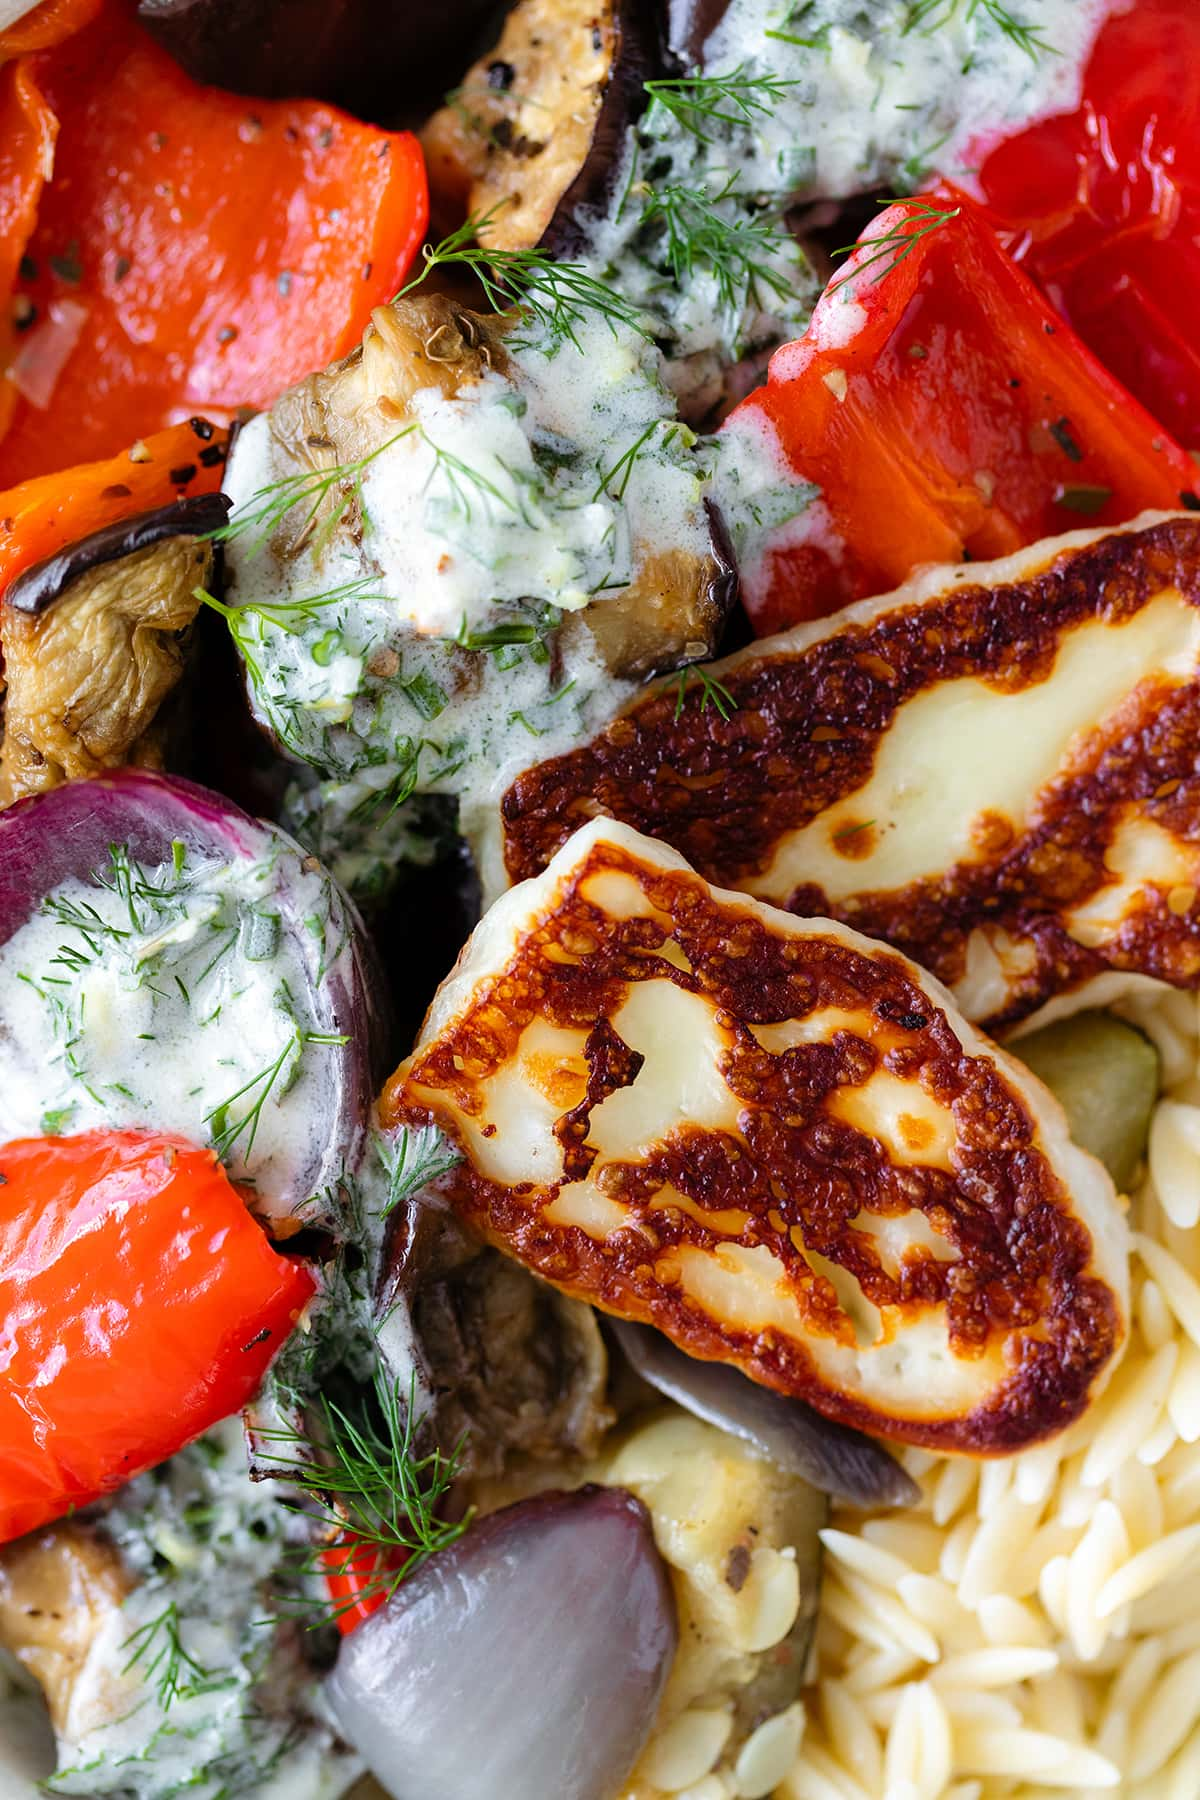 Halloumi Orzo Bowl with Roasted Vegetables and Yogurt Dill Sauce - zoom shot